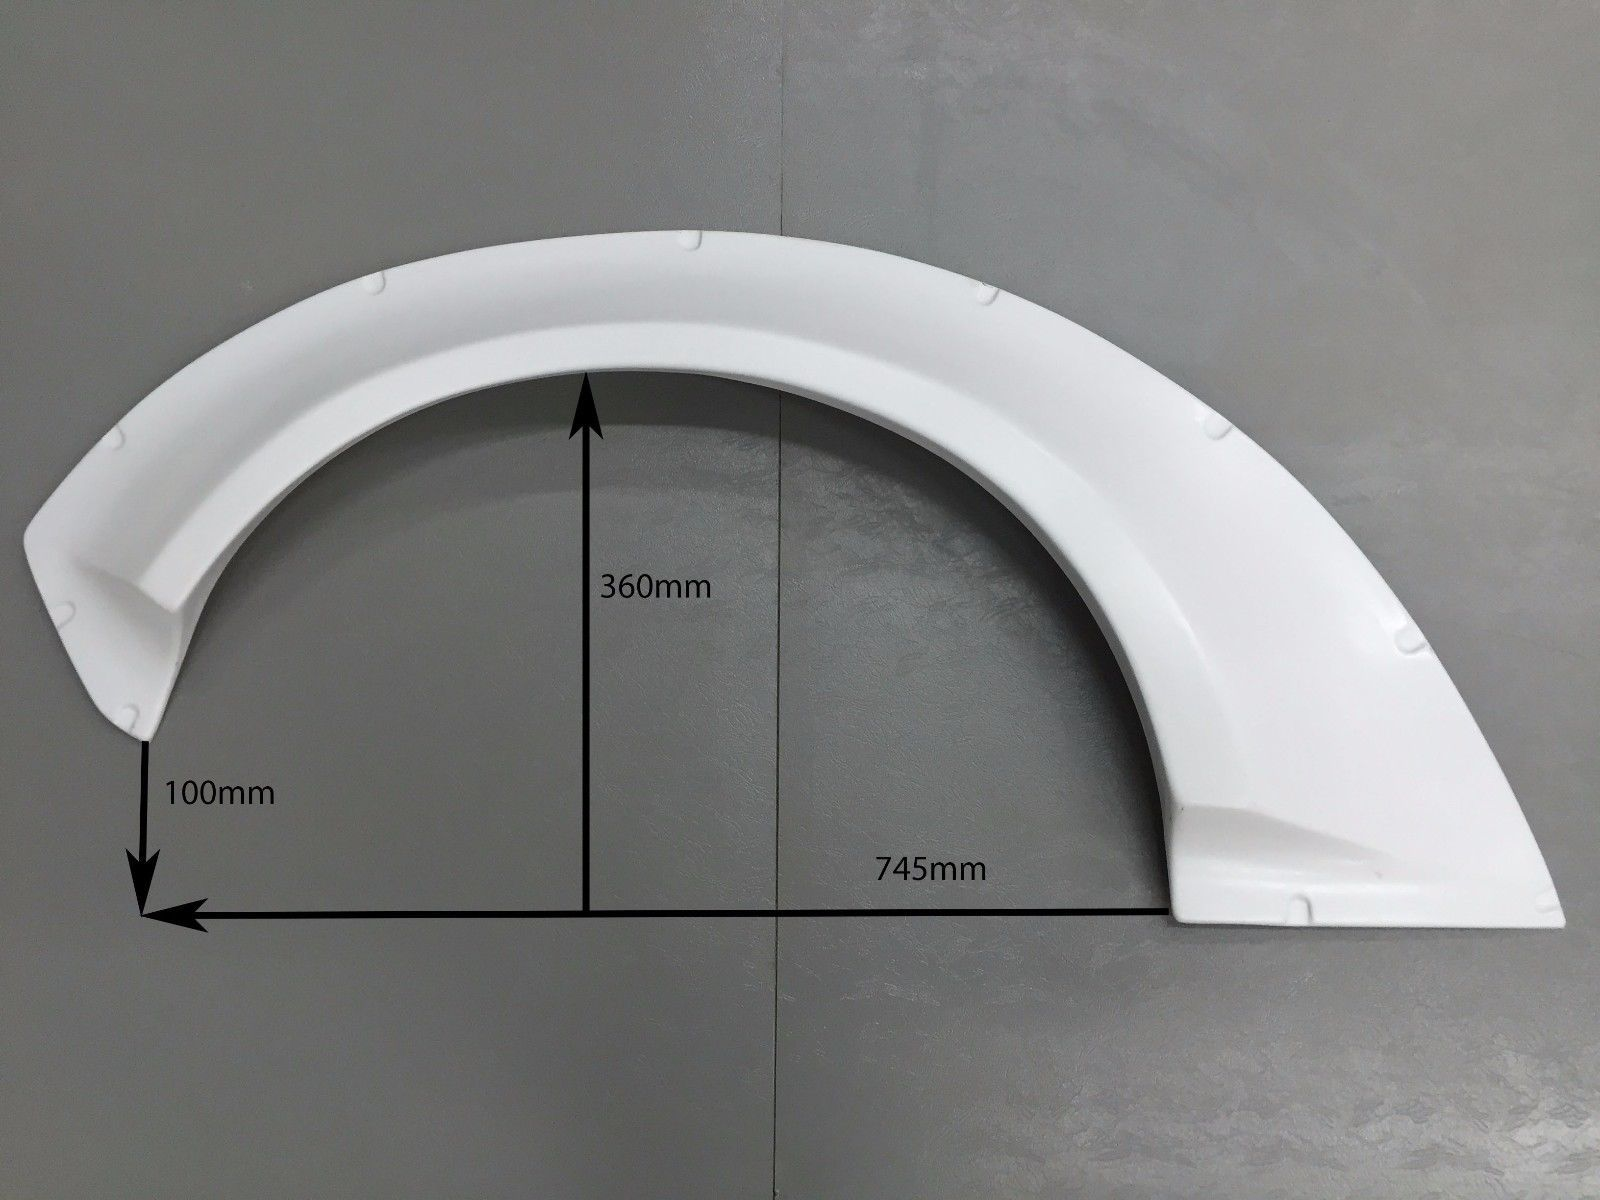 Universal Fender Flares Quot Mons Quot 70 Mm Abs Ford Focus